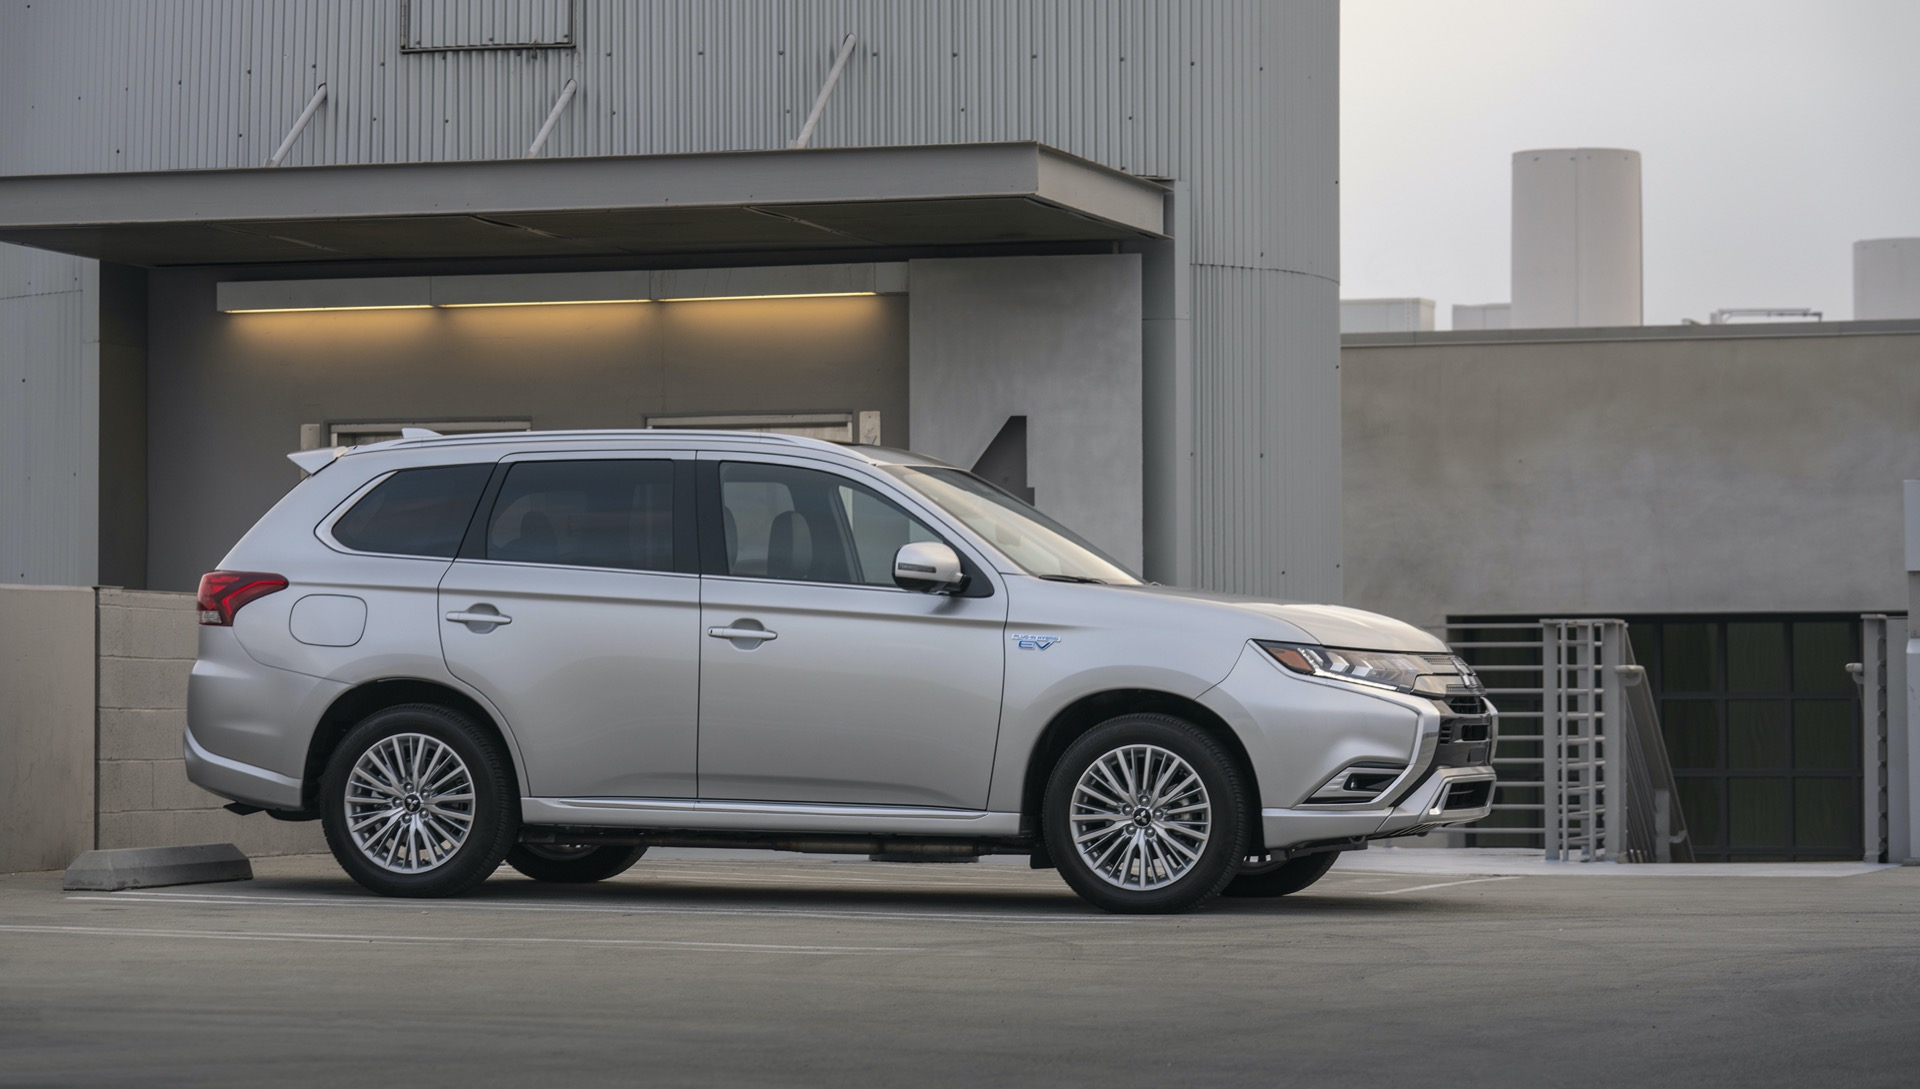 2021 Mitsubishi Outlander Plug In Hybrid Will Get More Electric Range Before Full Redesign